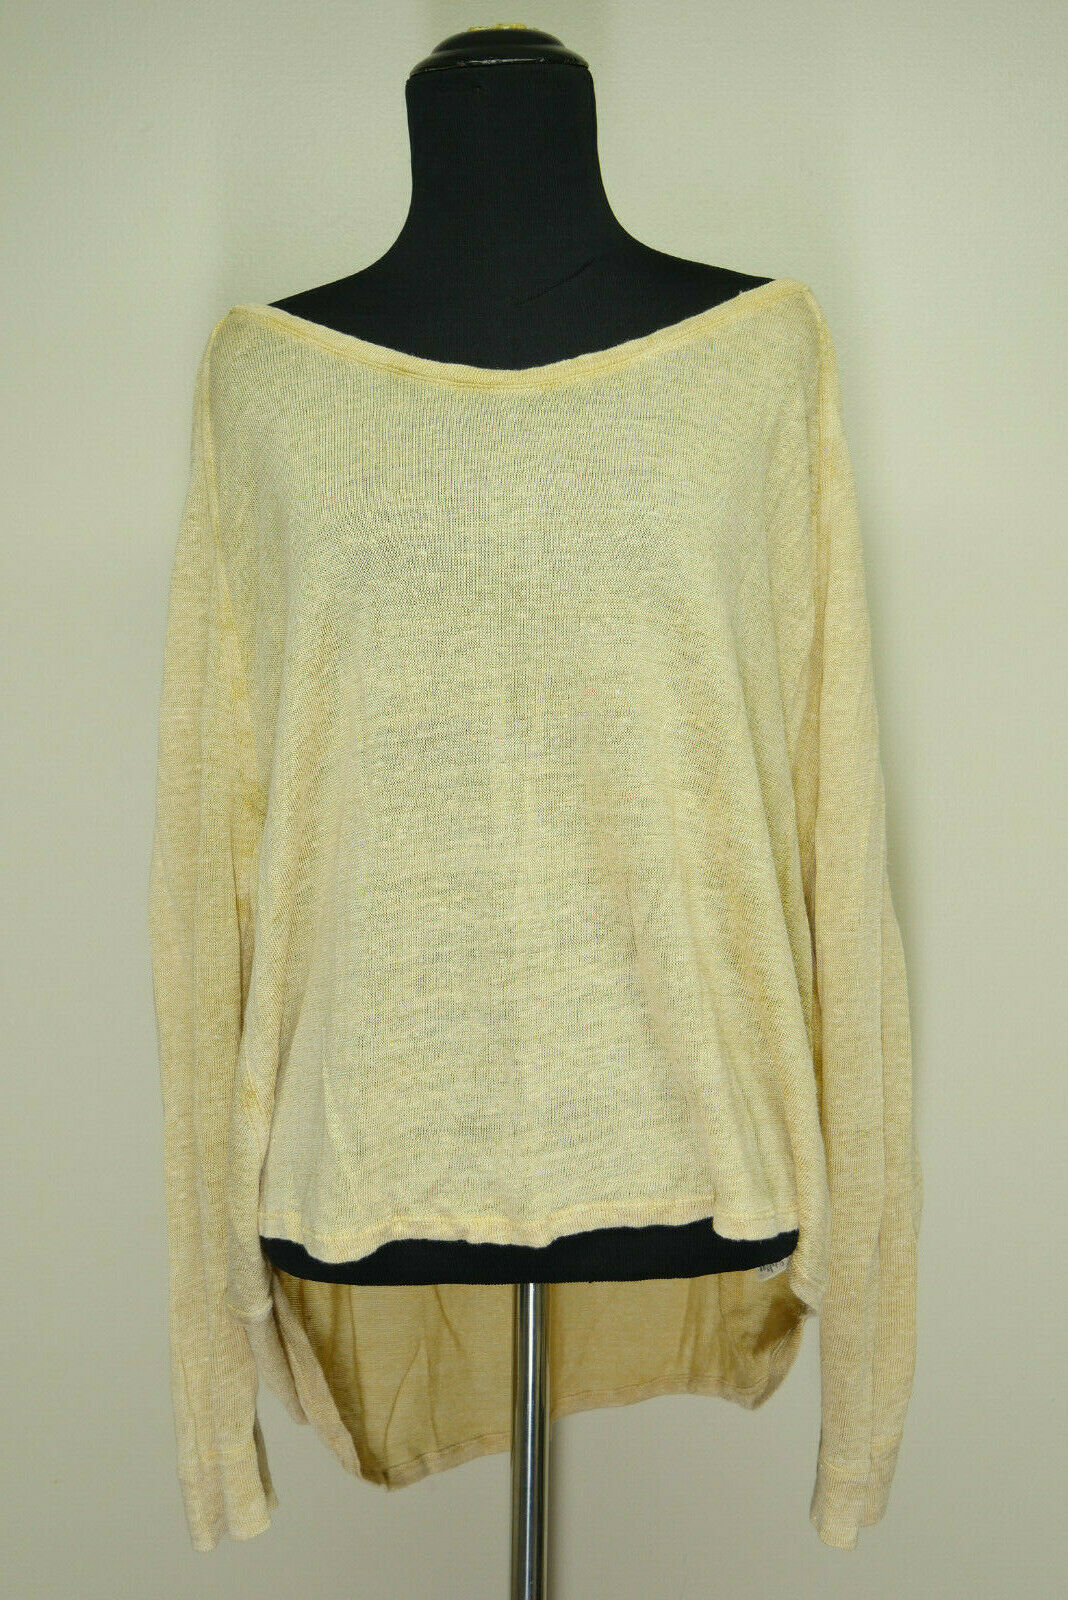 We The Free Free People gold Linen Blend Hi-Lo Doleman Sleeve Sweater Top Sz L